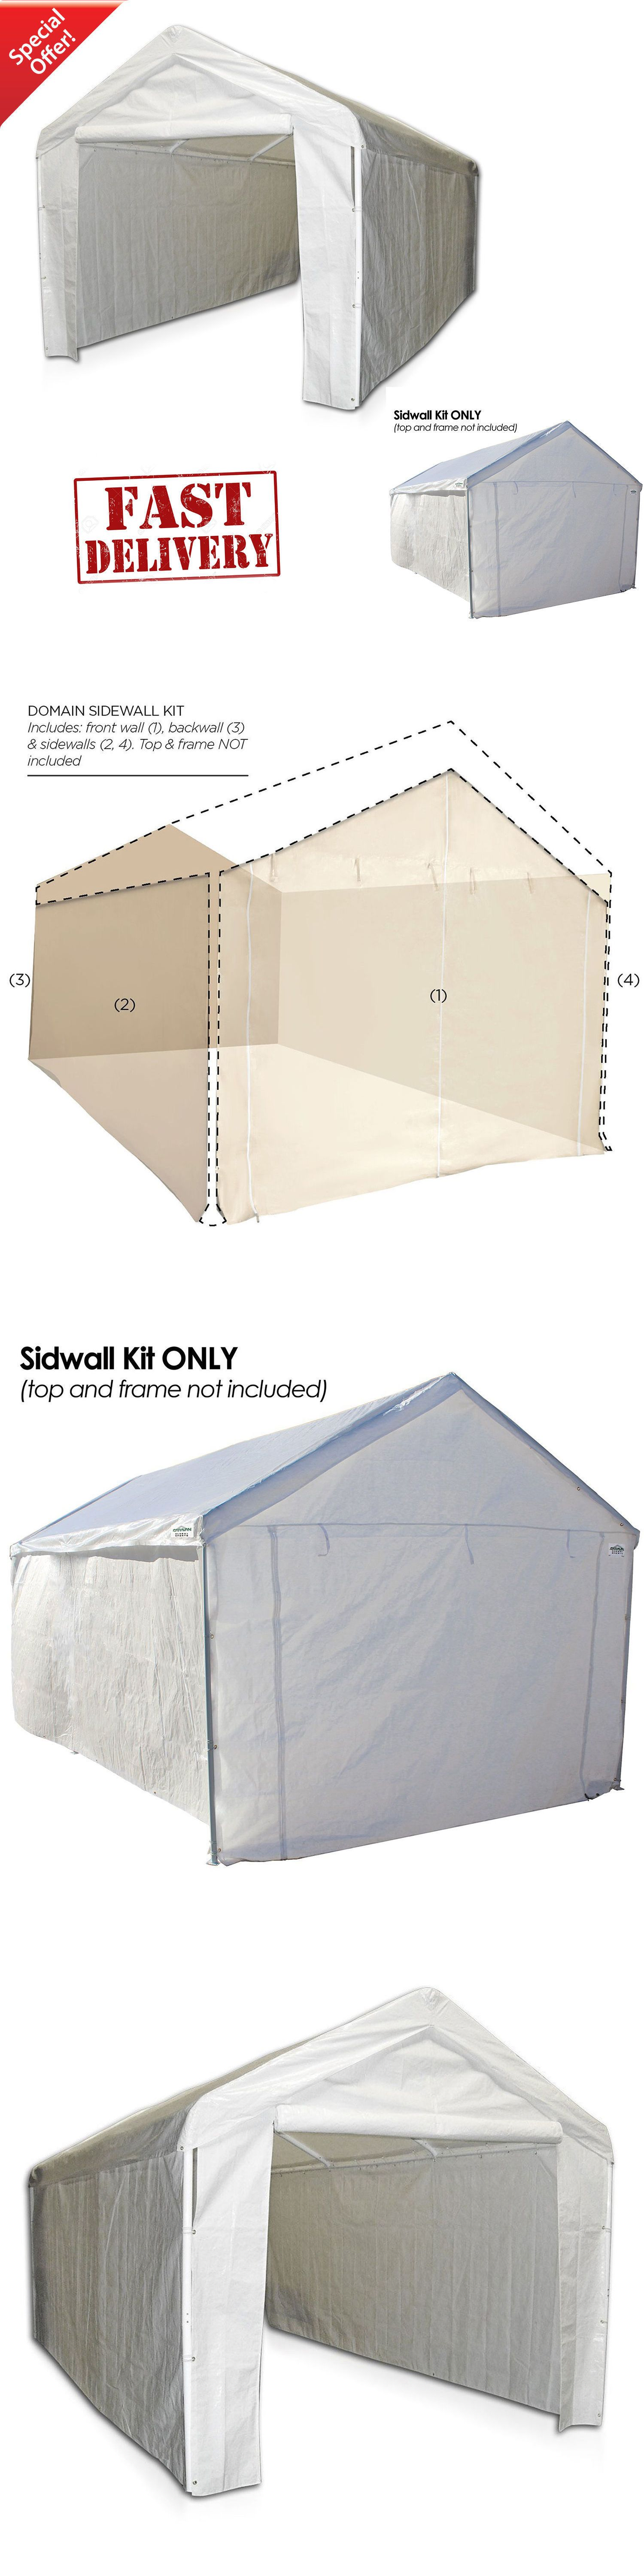 Details about Garage Canopy Side Wall Kit ONLY 10 x 20 ...